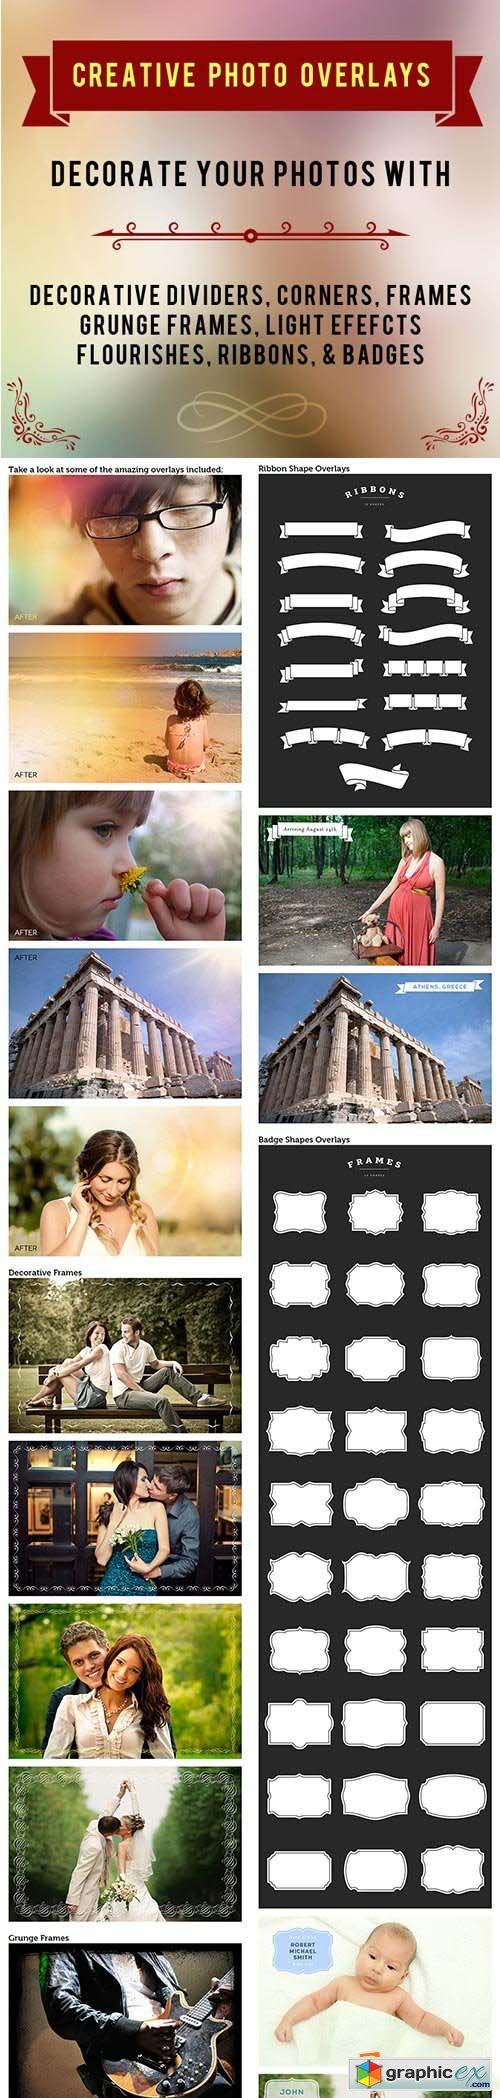 250+ Creative Photo Overlays to Enhance Your Images